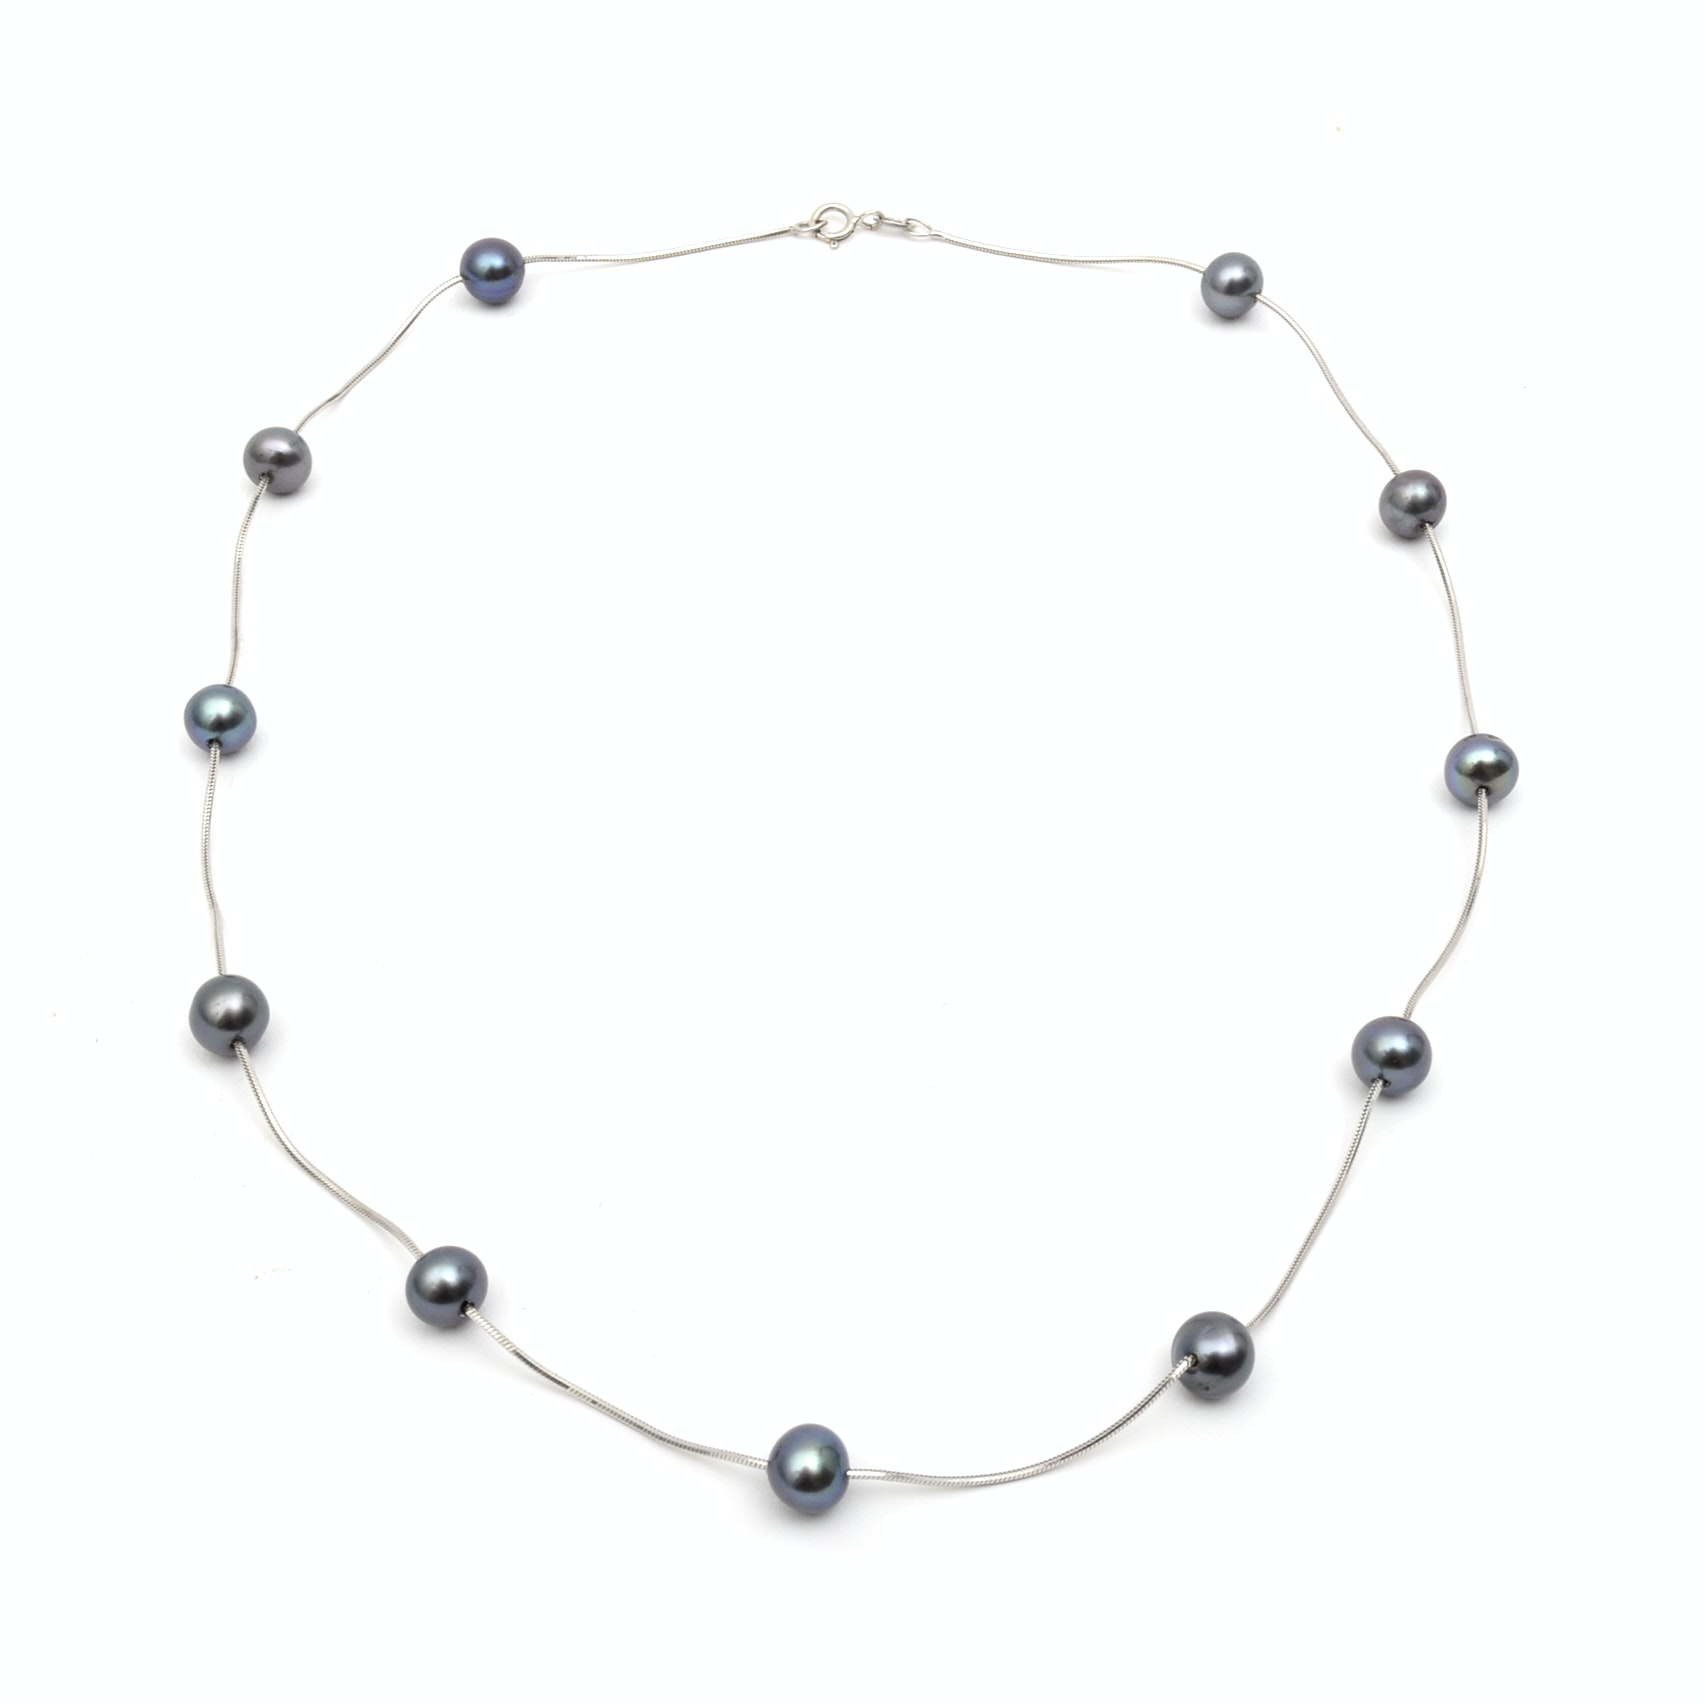 14K White Gold and Black Freshwater Pearl Collar Necklace